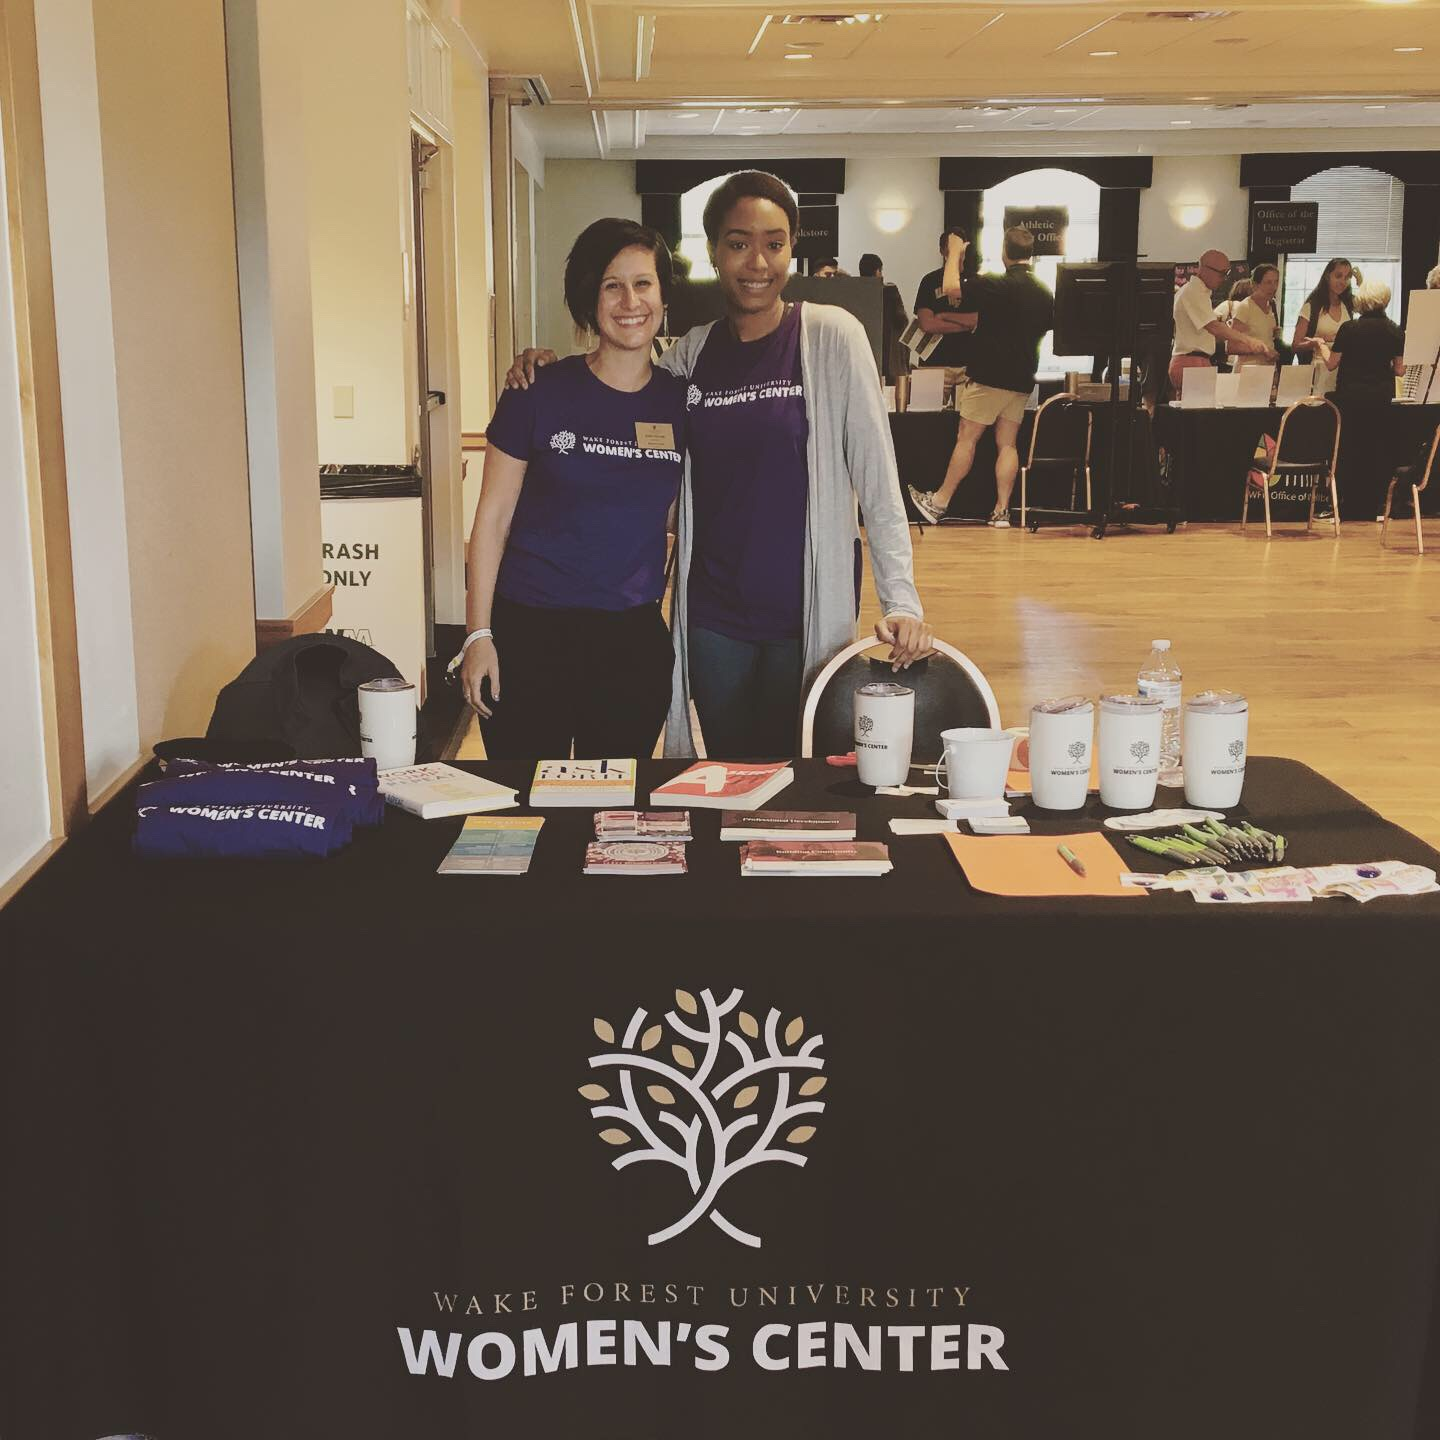 Director and student worker smiling while tabling at an event